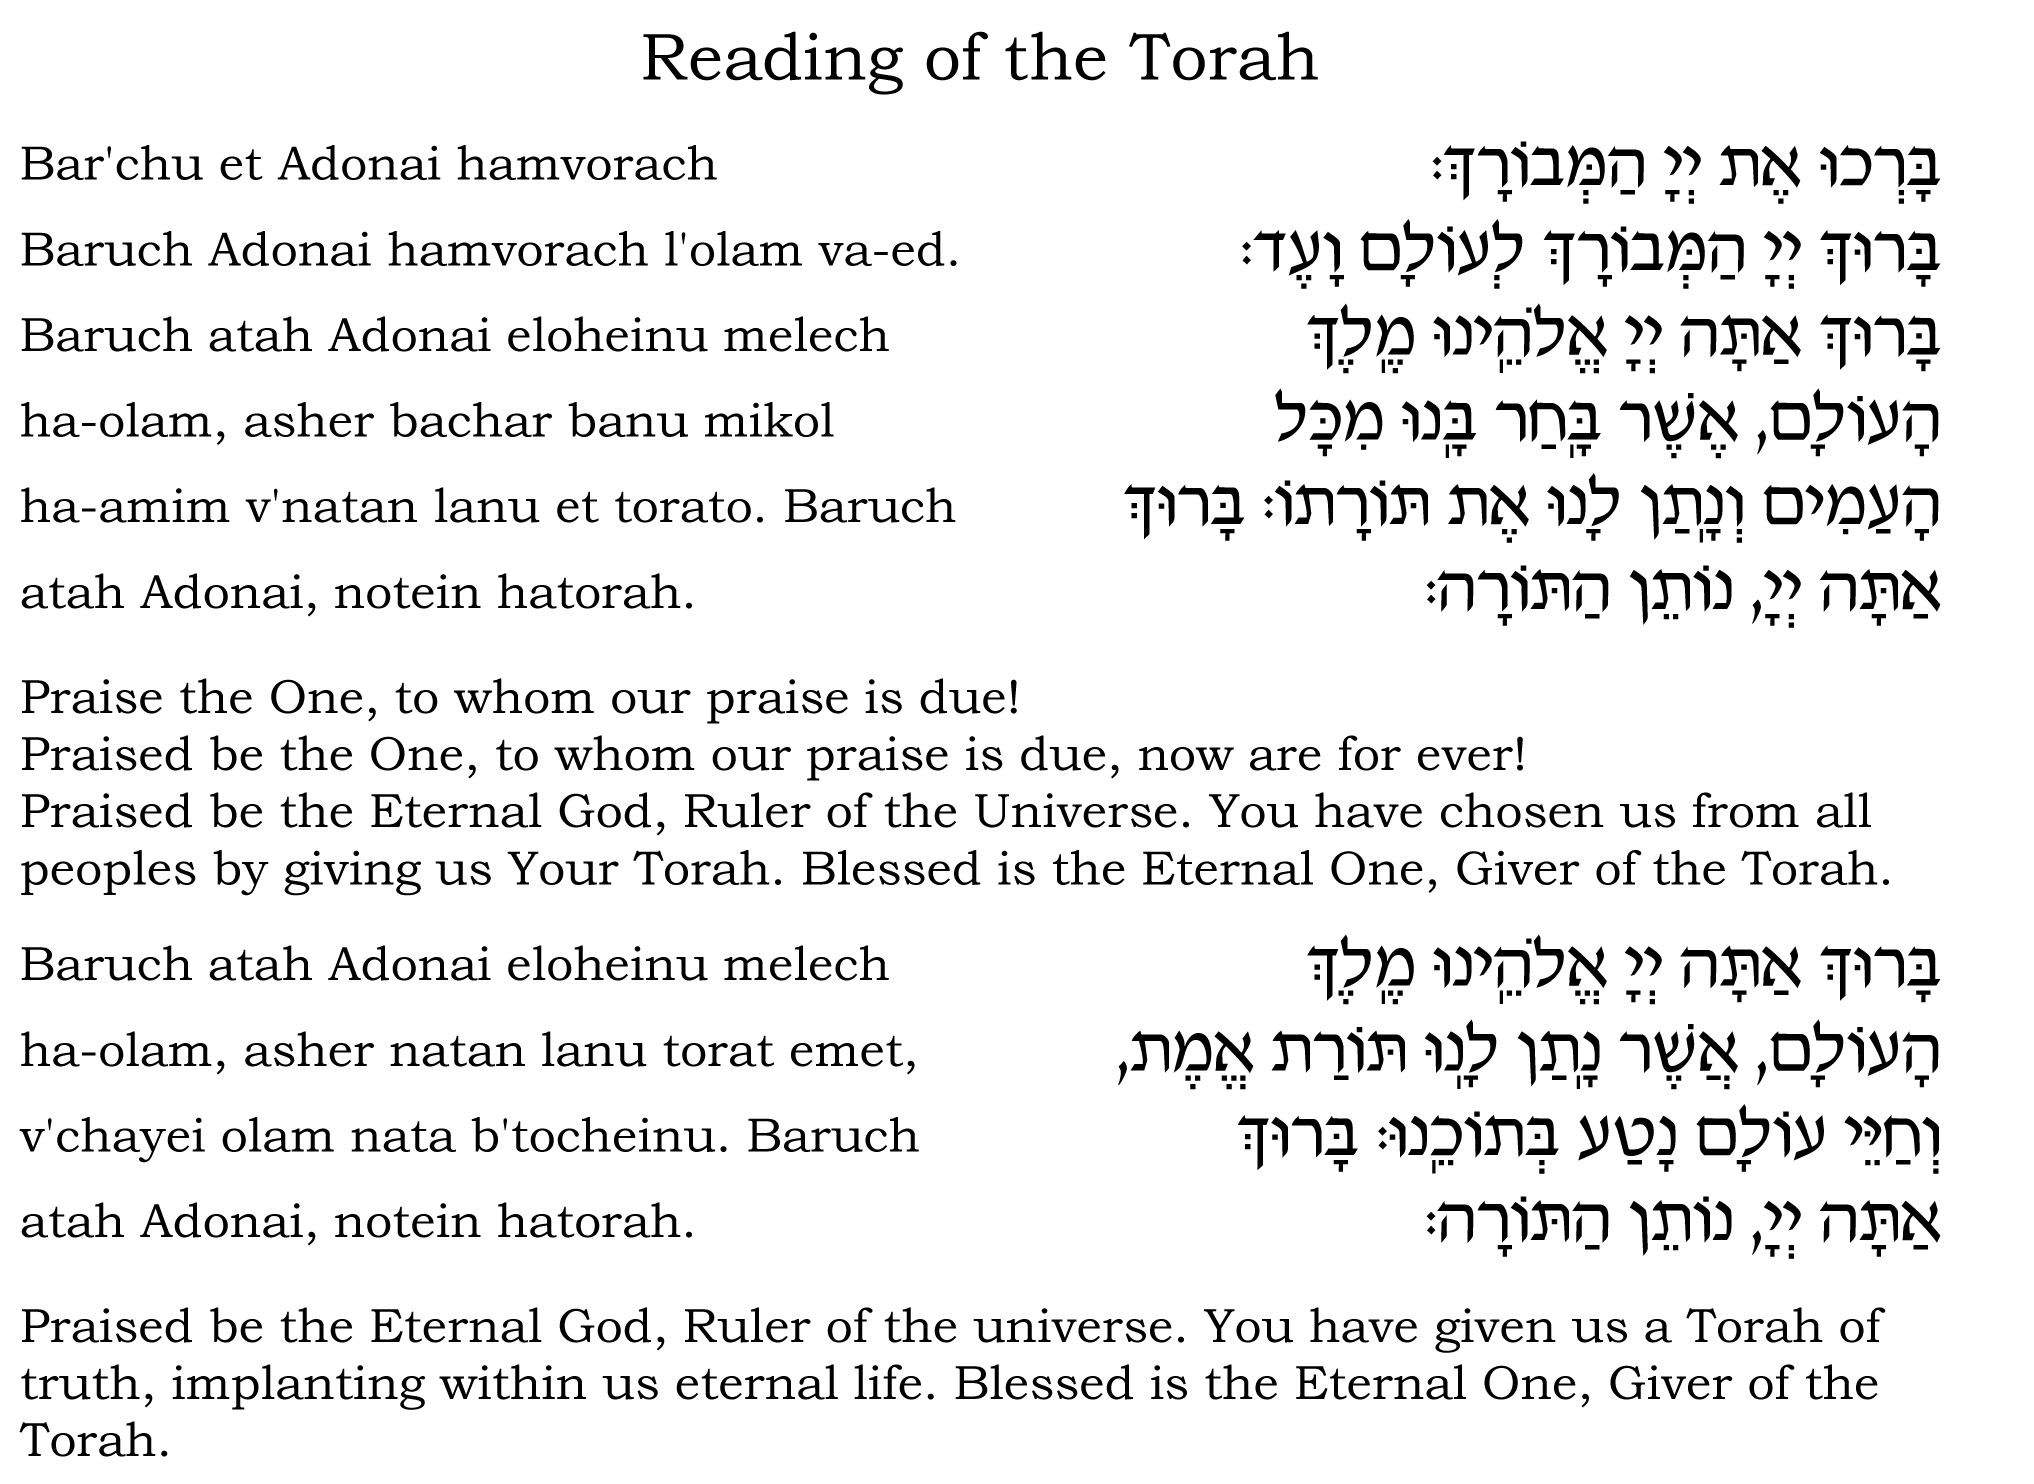 Blessing for Learning and Studying Torah | ReformJudaism.org